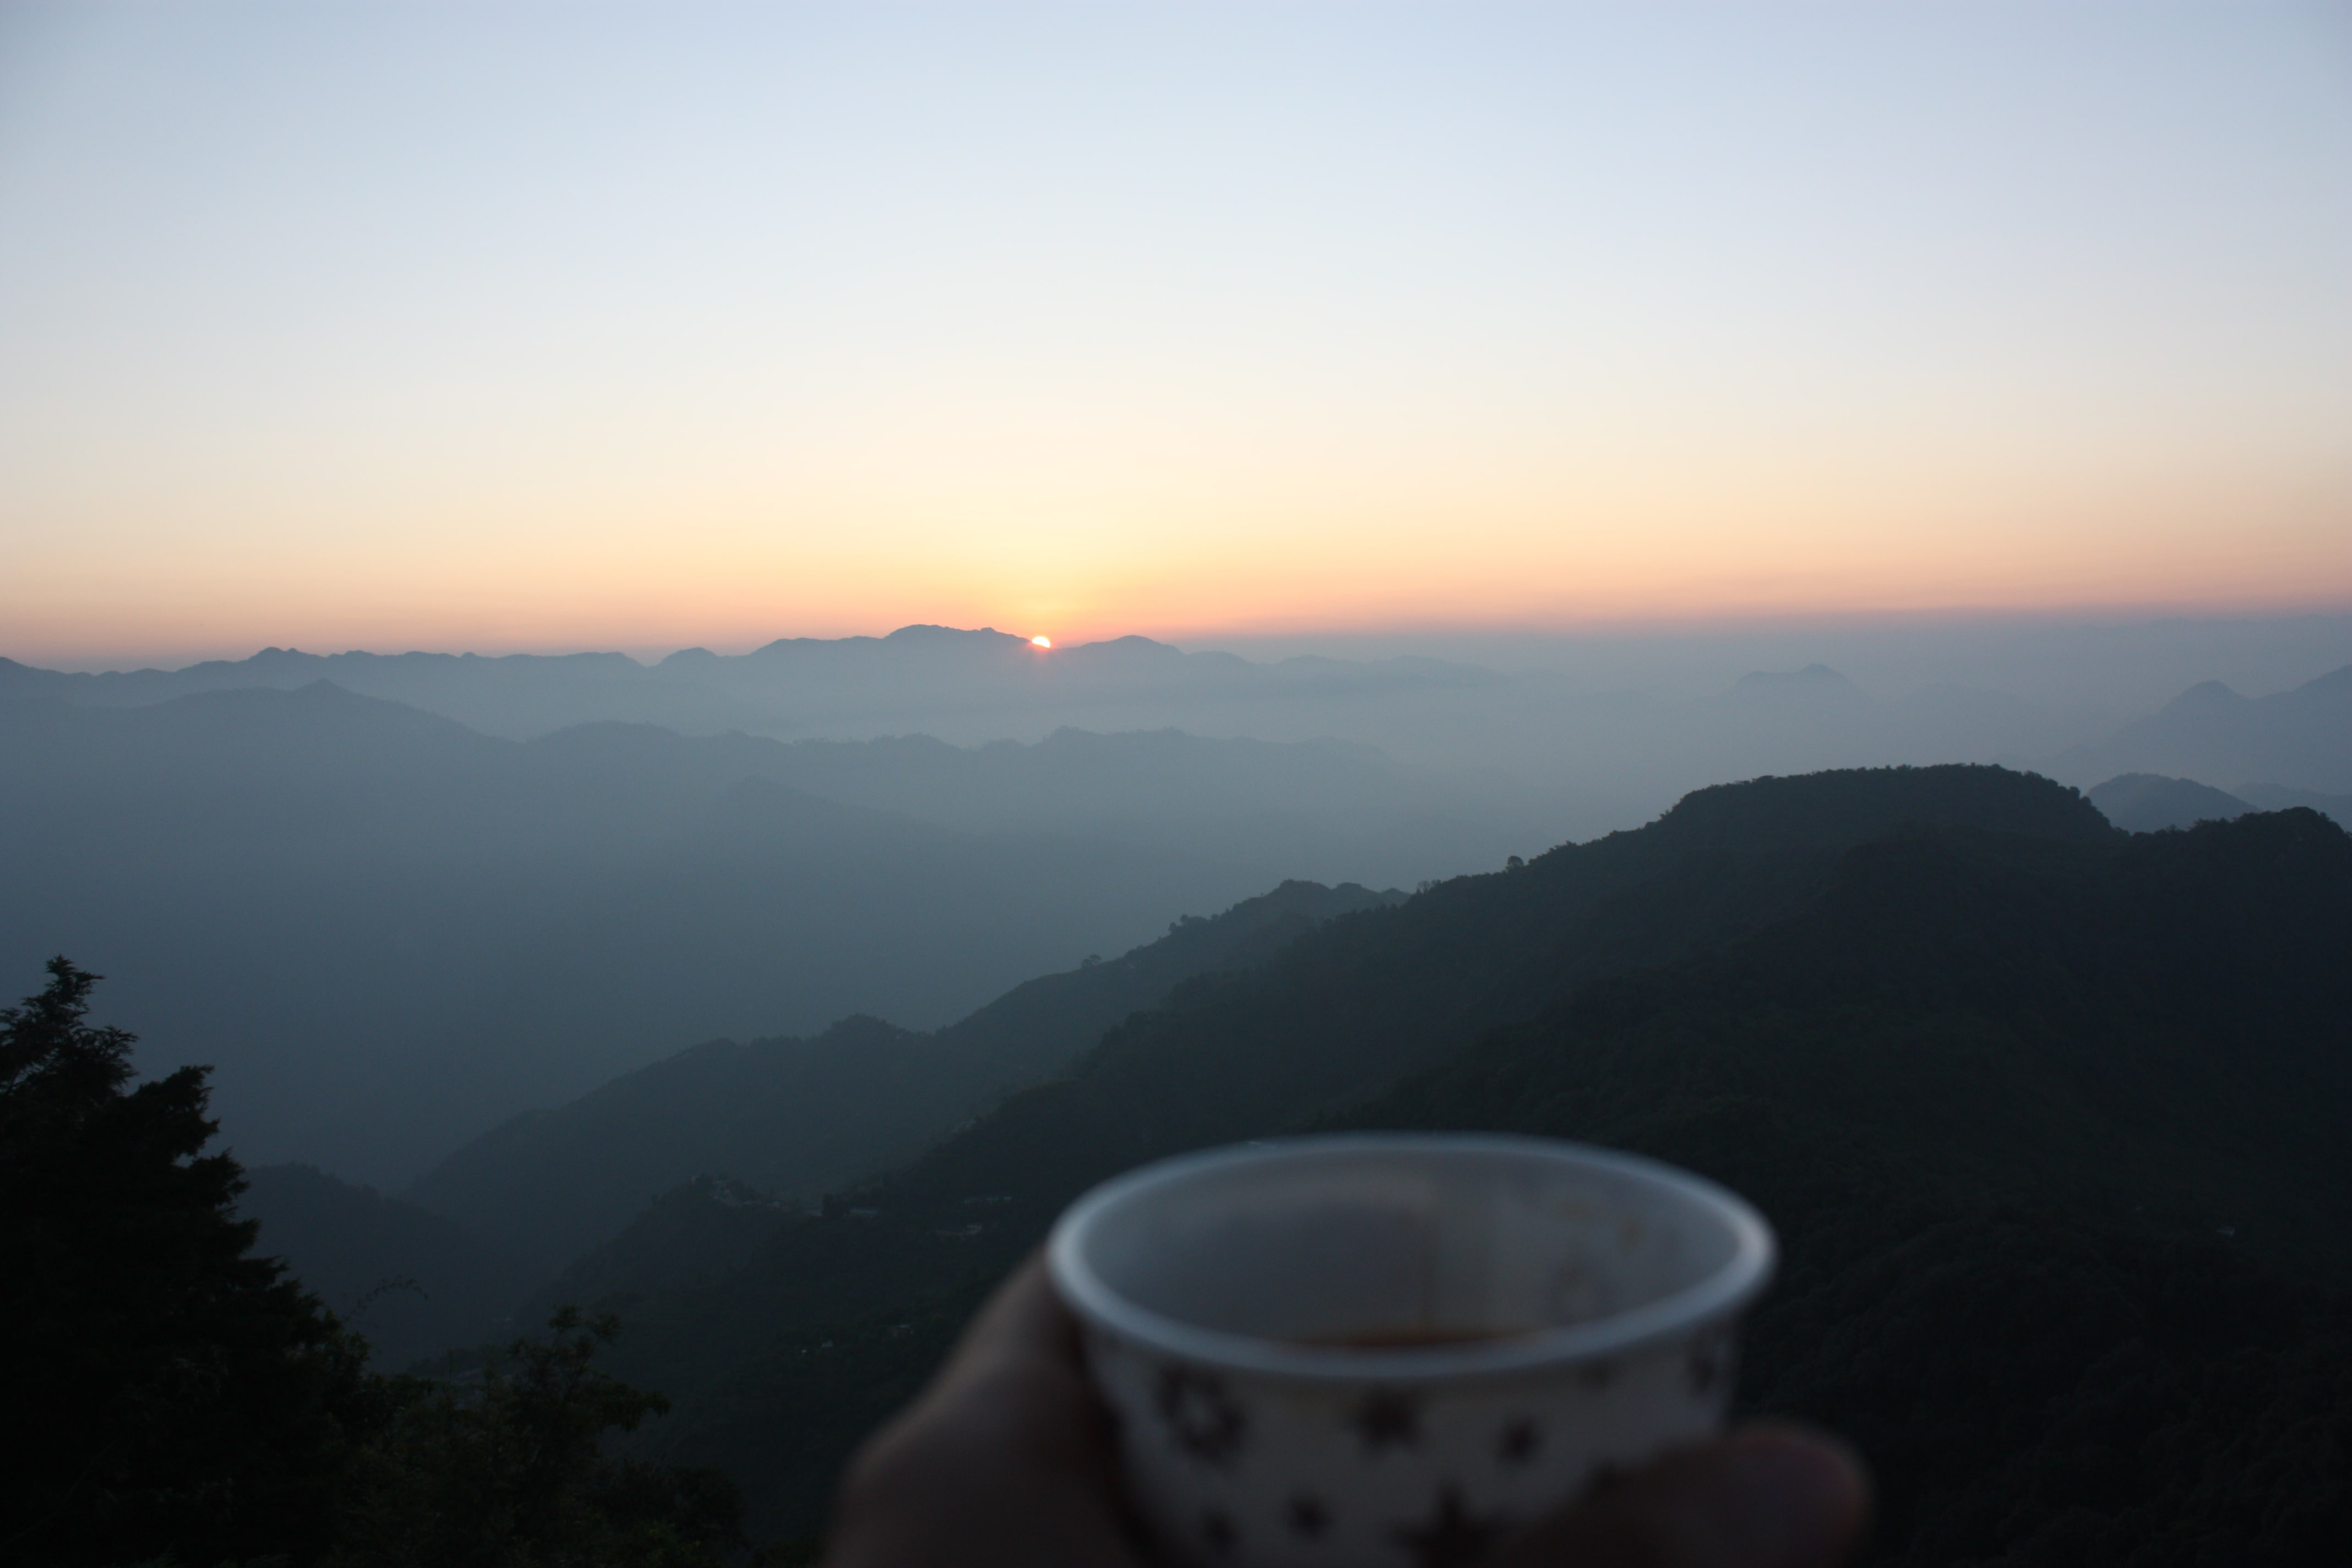 Sunrise at Kunjapuri